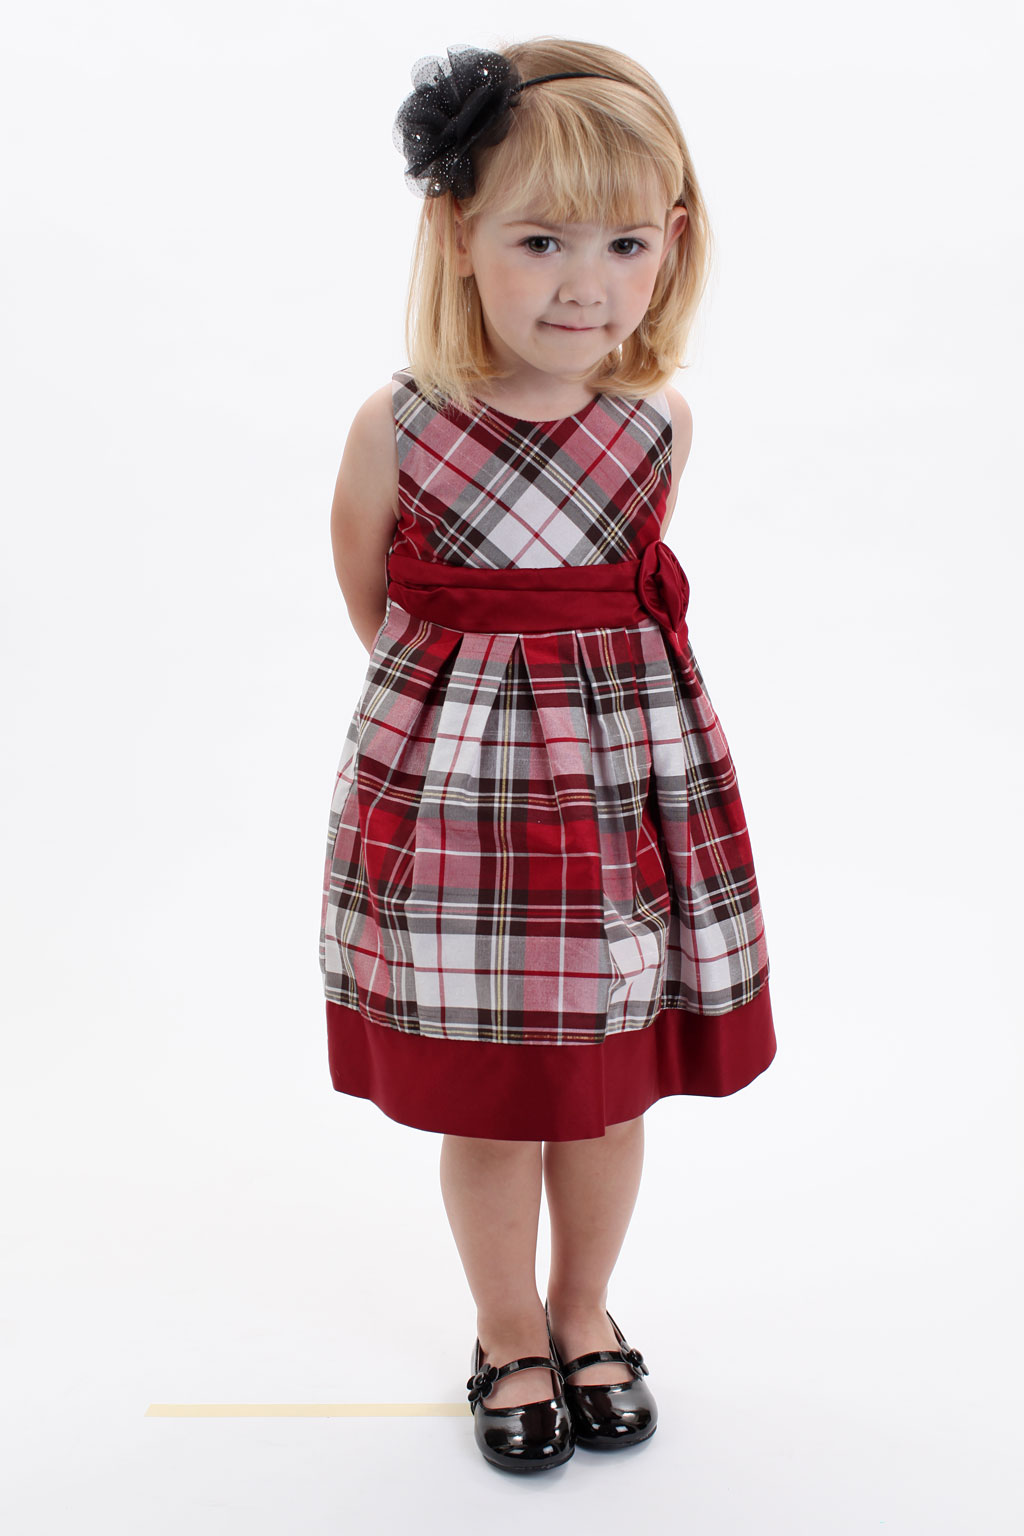 You searched for: girls tartan dress! Etsy is the home to thousands of handmade, vintage, and one-of-a-kind products and gifts related to your search. No matter what you're looking for or where you are in the world, our global marketplace of sellers can help you find unique and affordable options. Let's get started!